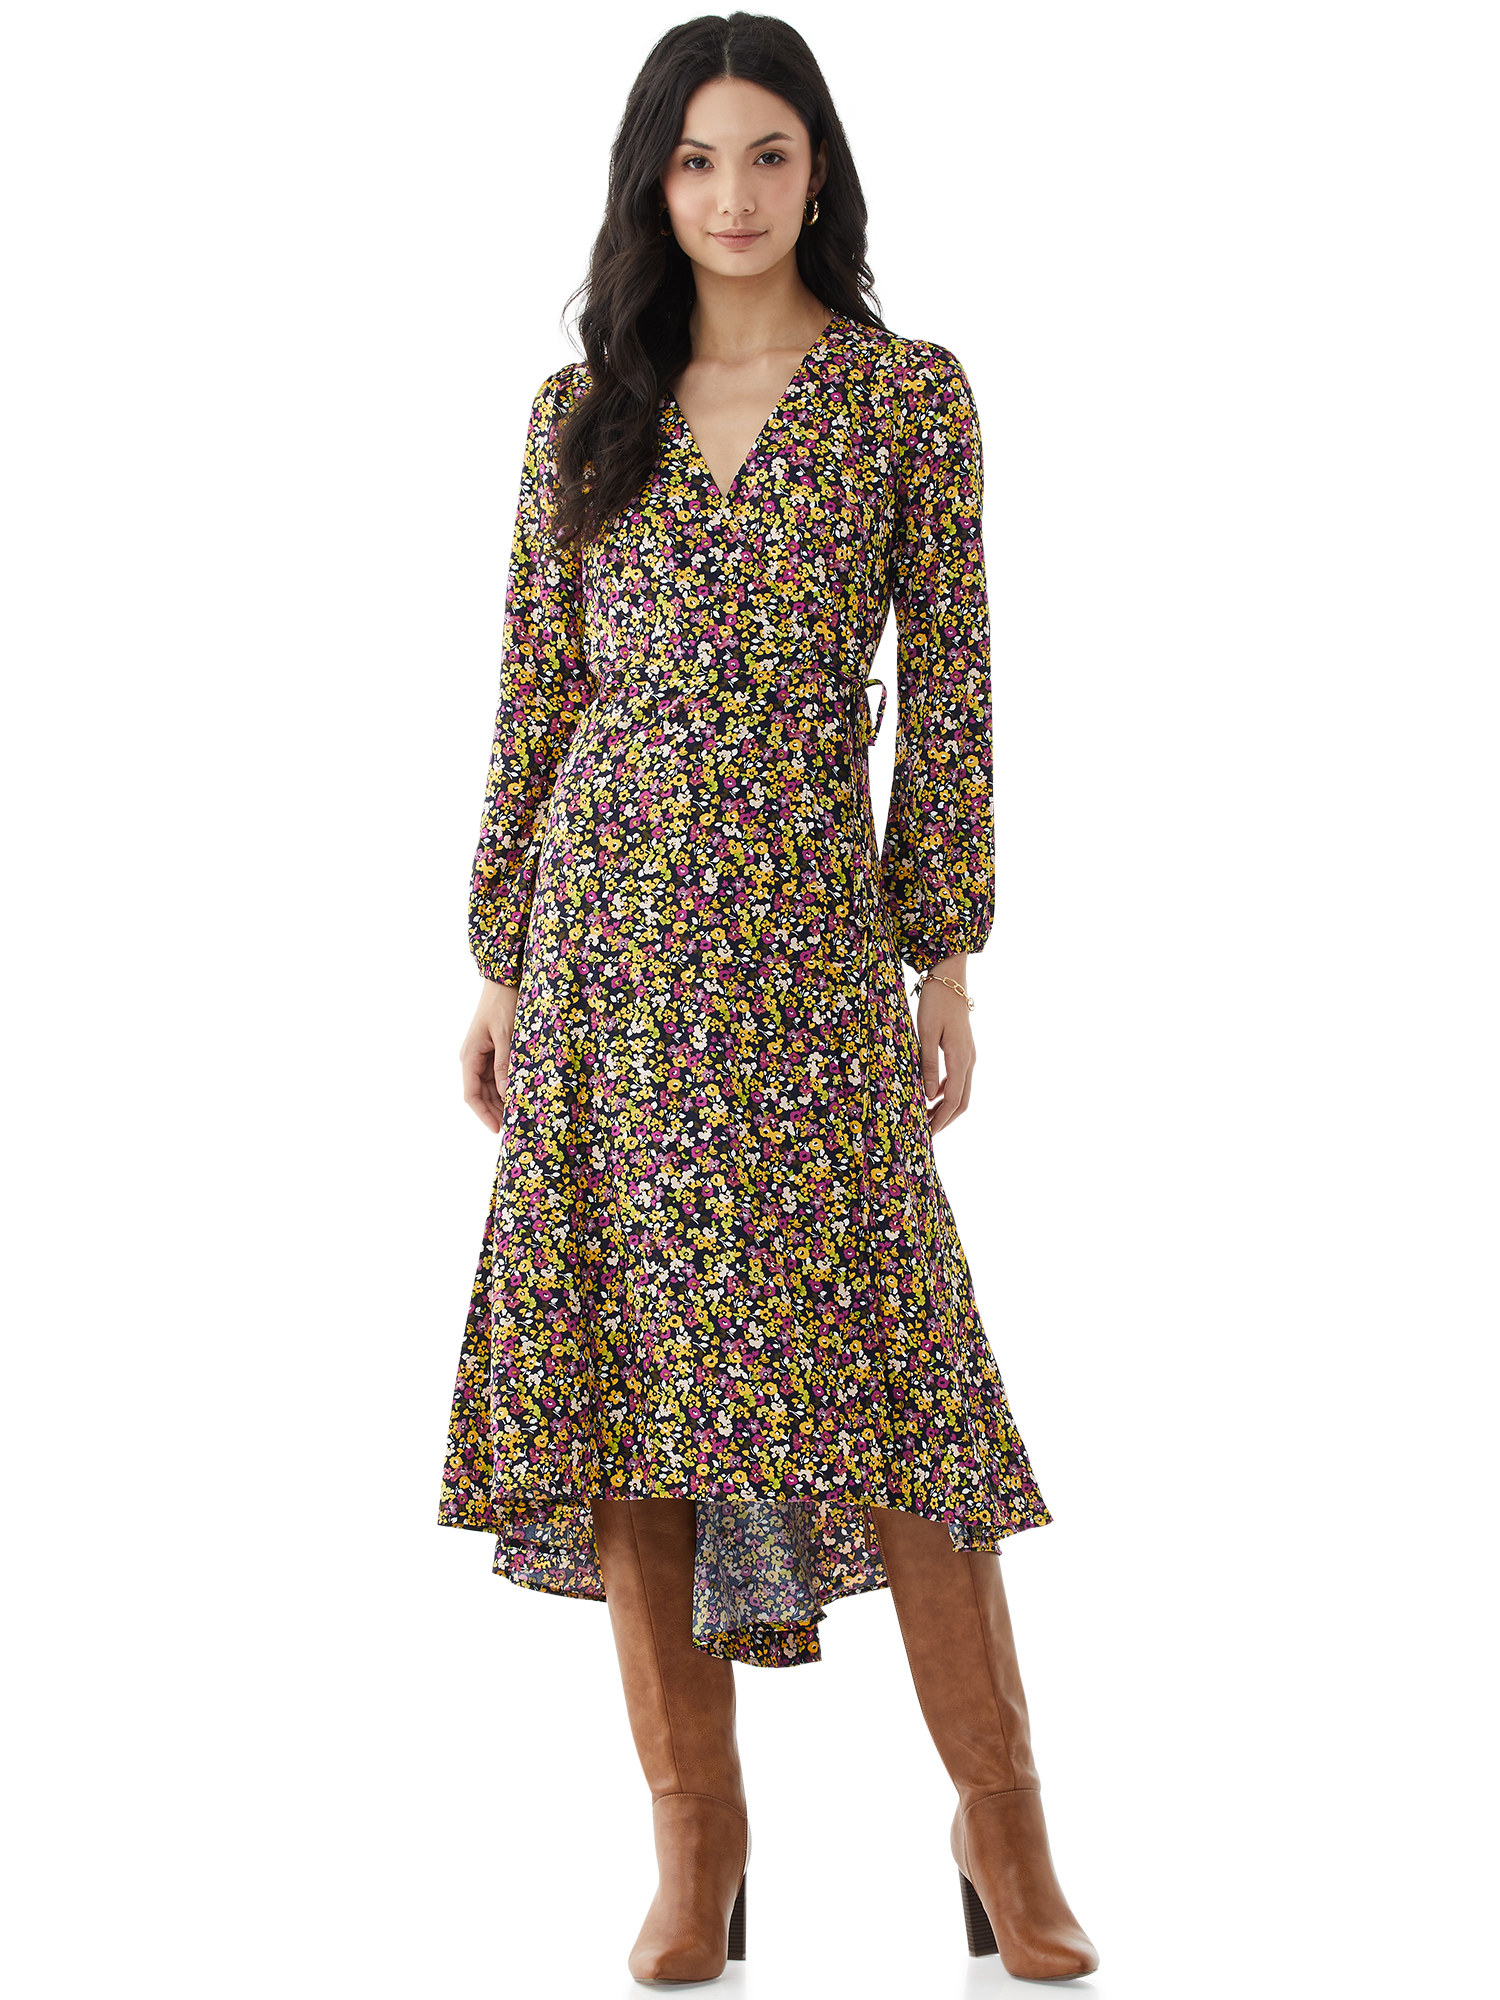 model wears floral wrap dress with knee high brown leather heeled boots